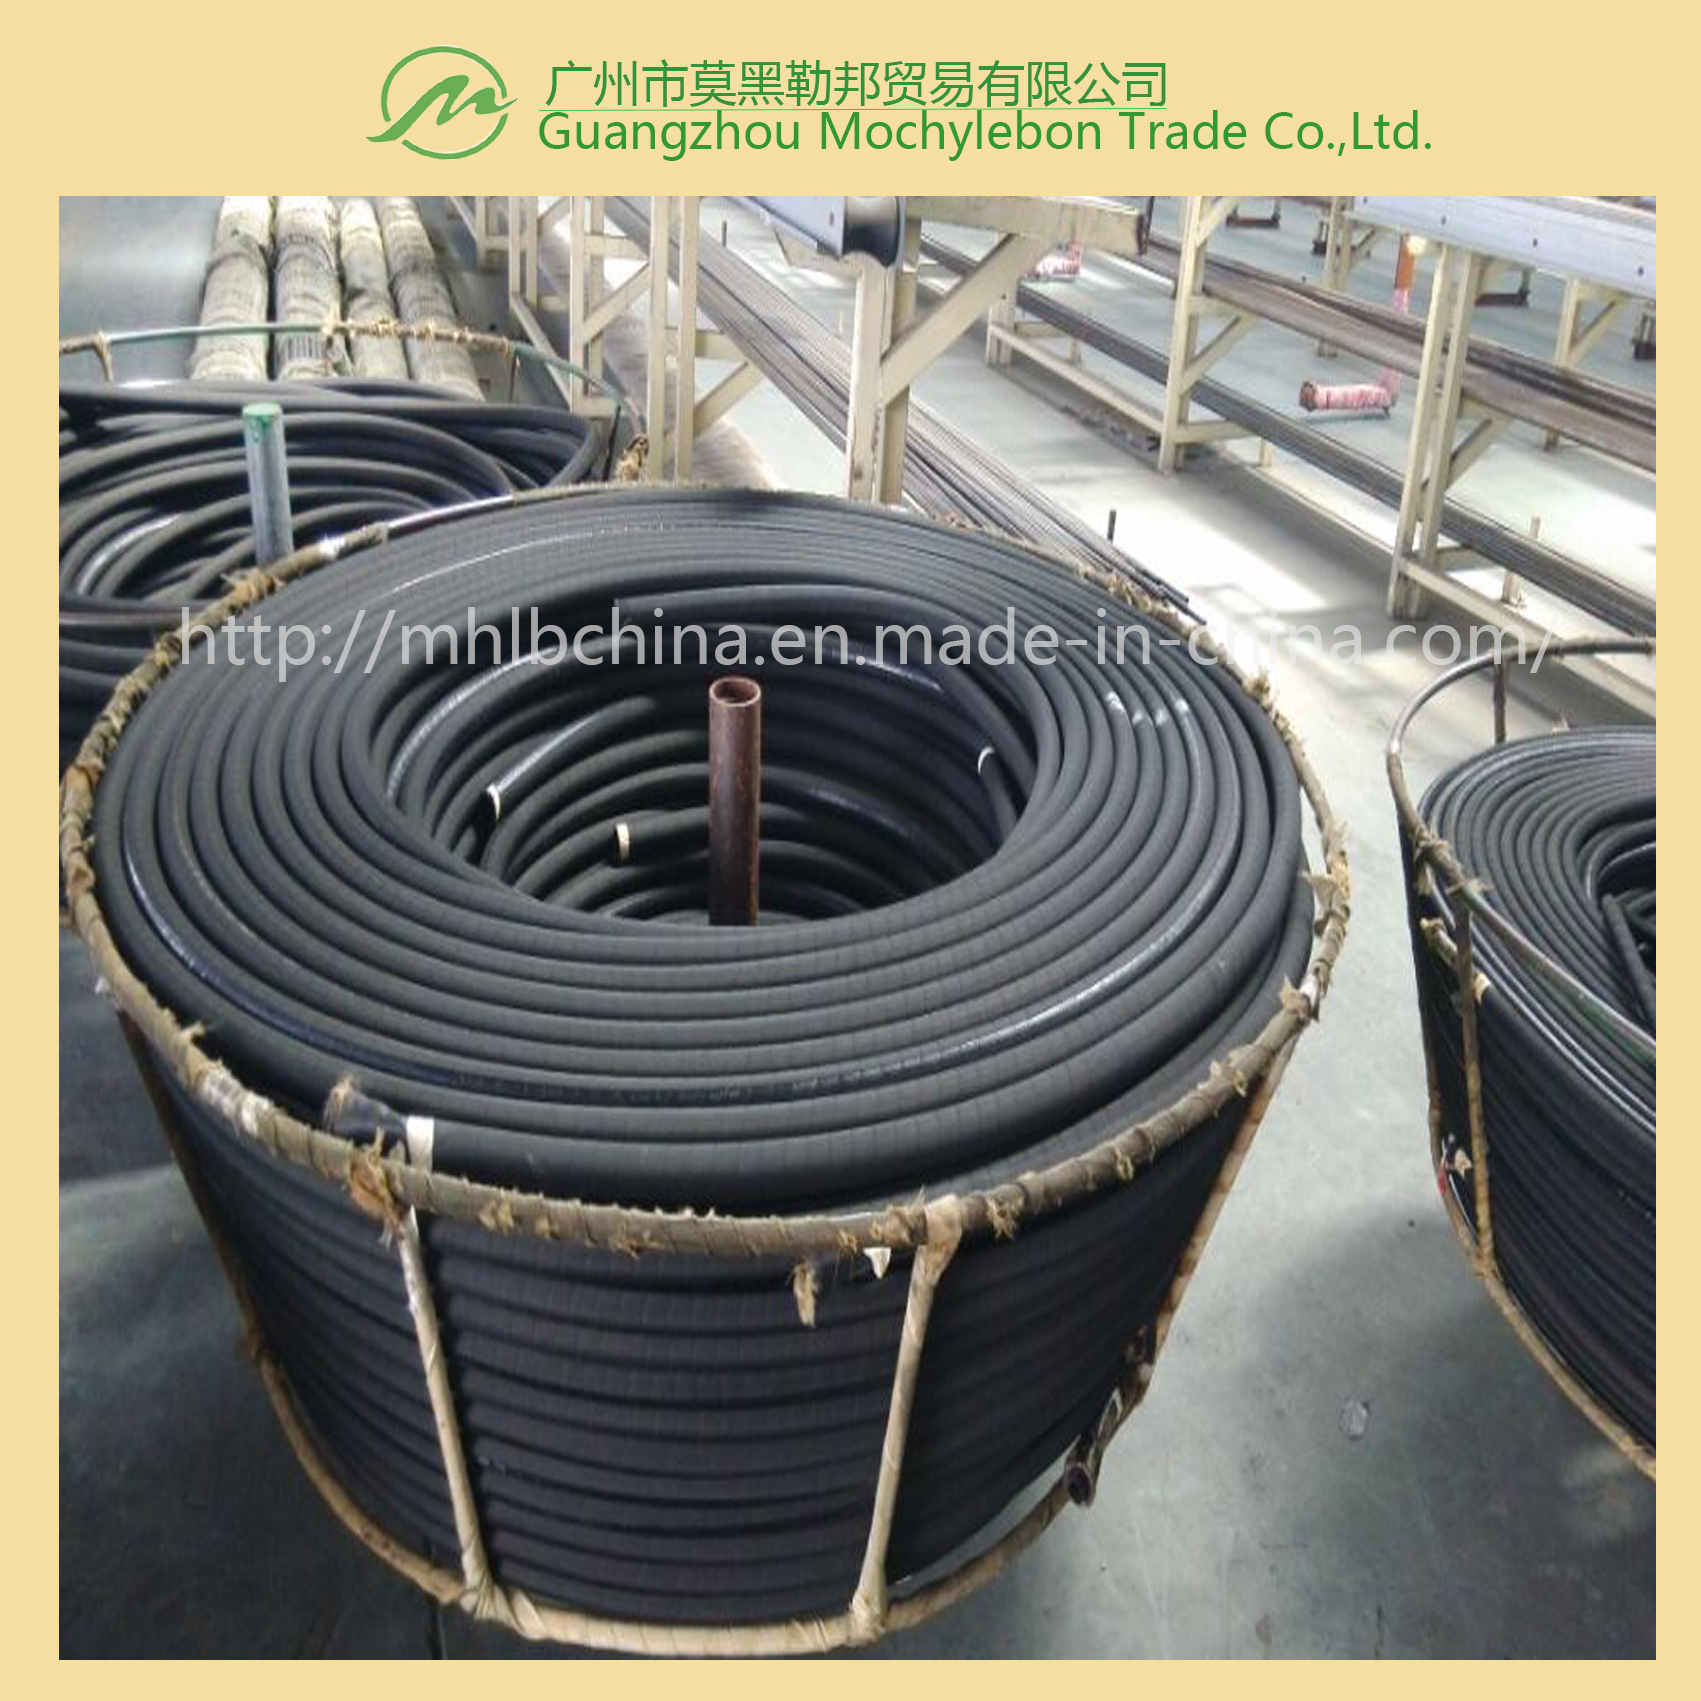 Wire Braided Hydraulic Hose for Coal Mine (602-3B-1-1/4) pictures & photos